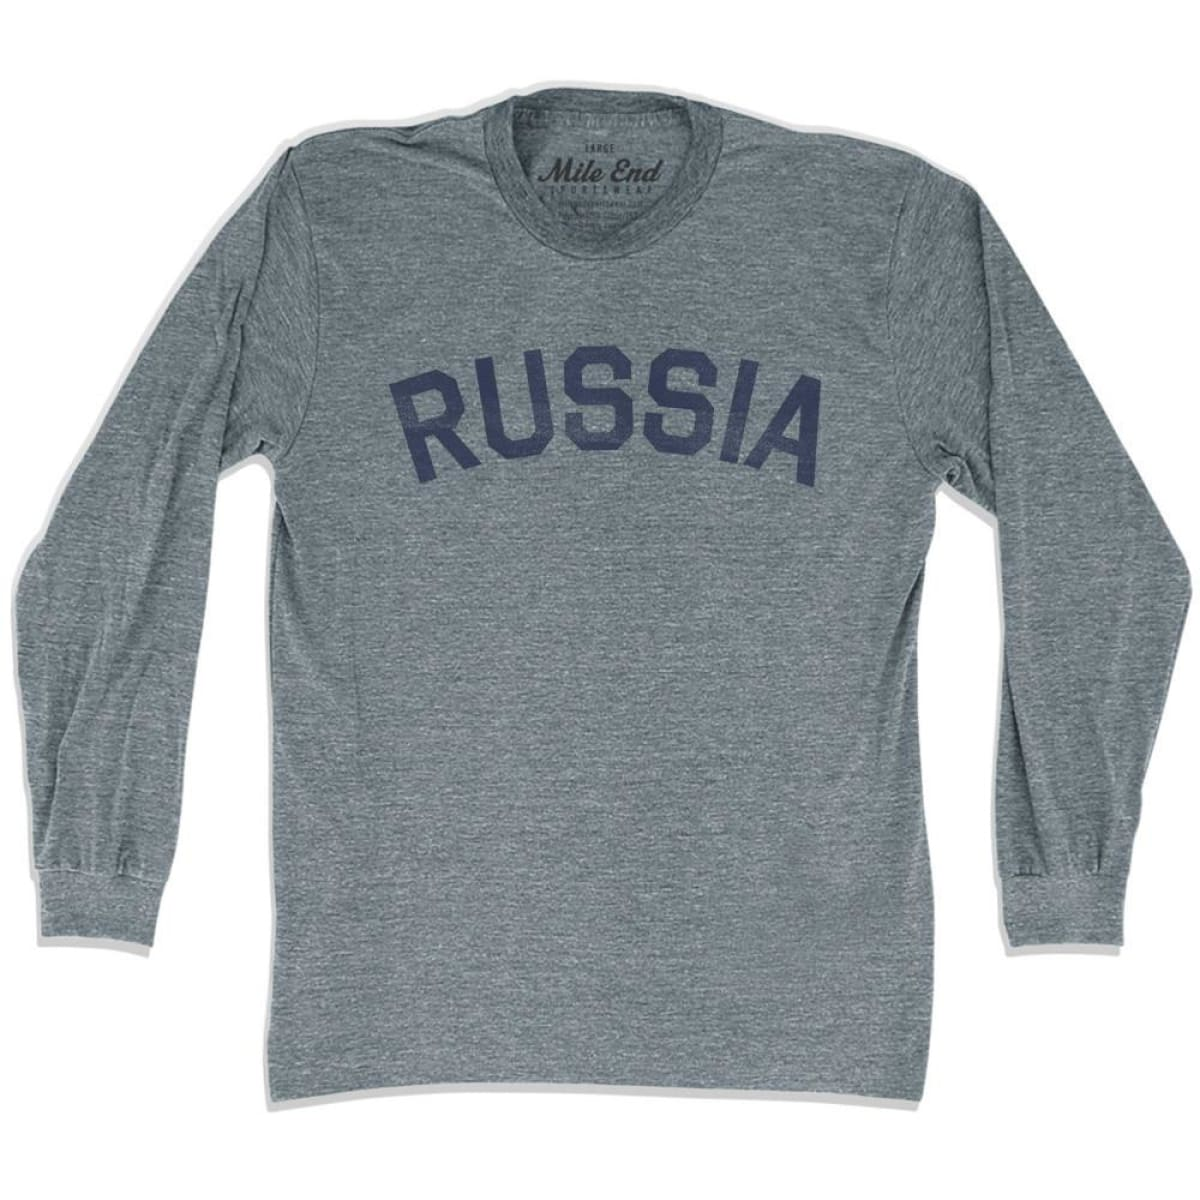 Russia City Vintage Long Sleeve T-shirt - Athletic Grey / Adult X-Small - Mile End City